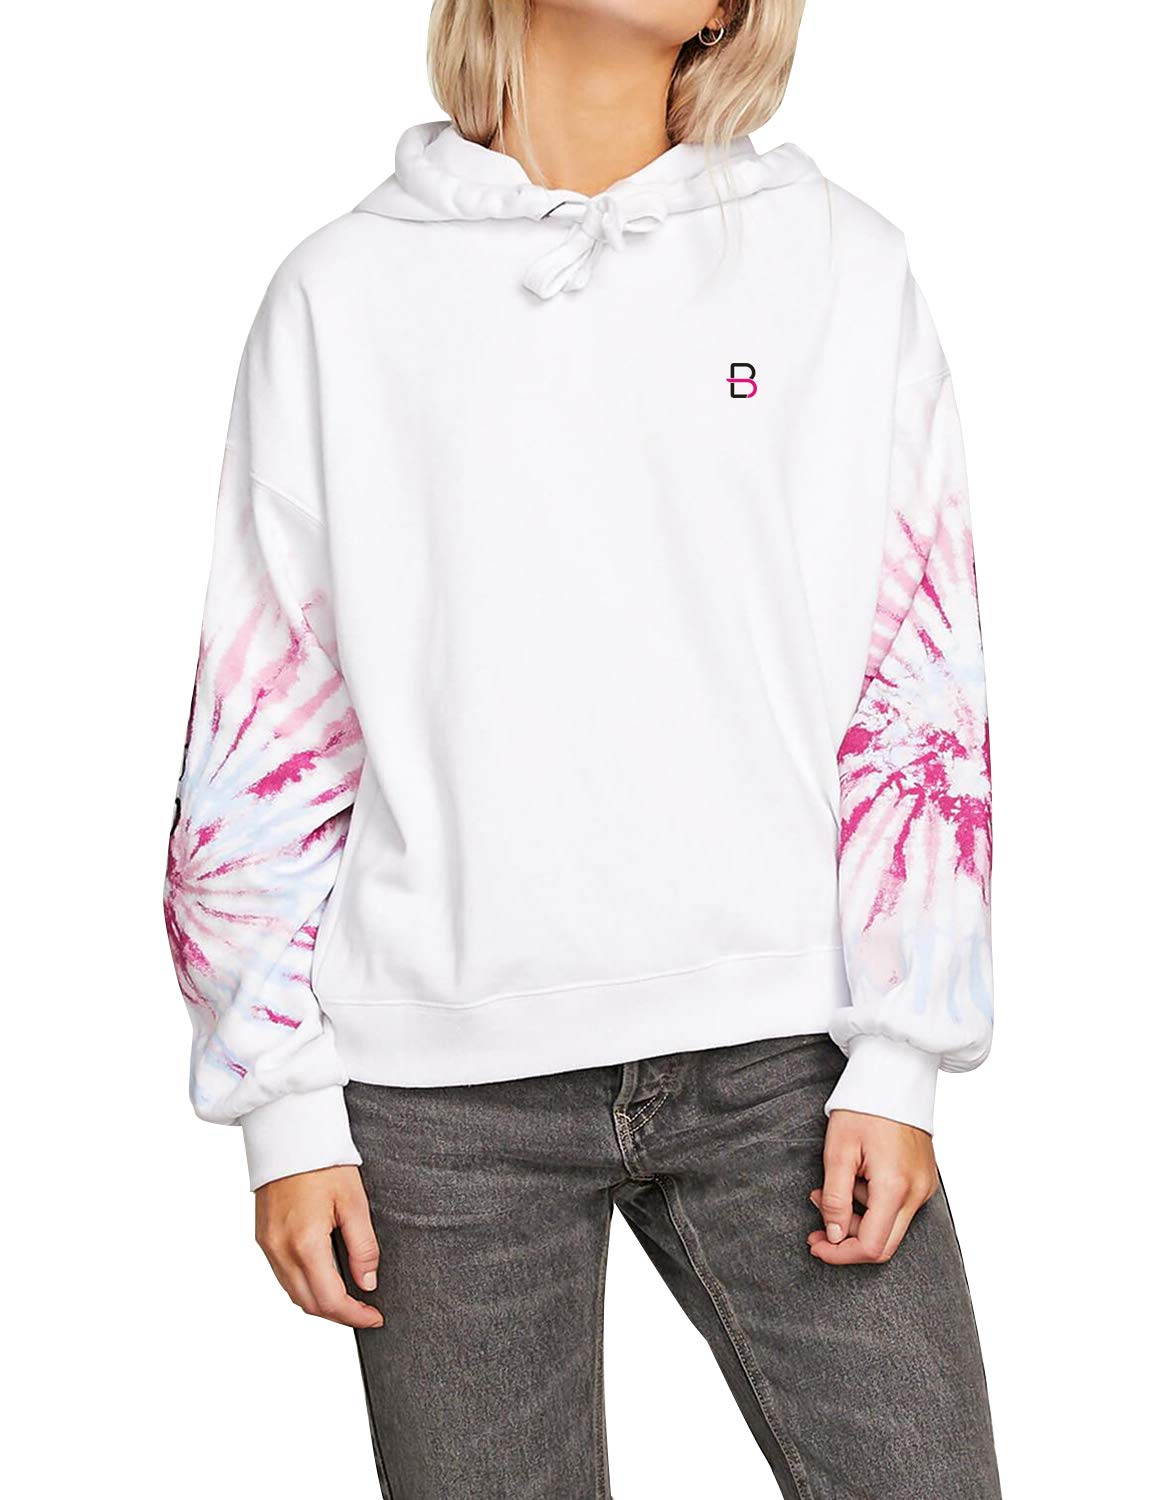 Blooming Jelly Womens Long Sleeve Tie Dye Ribbed Pullover Sweatshirt Hoodies White